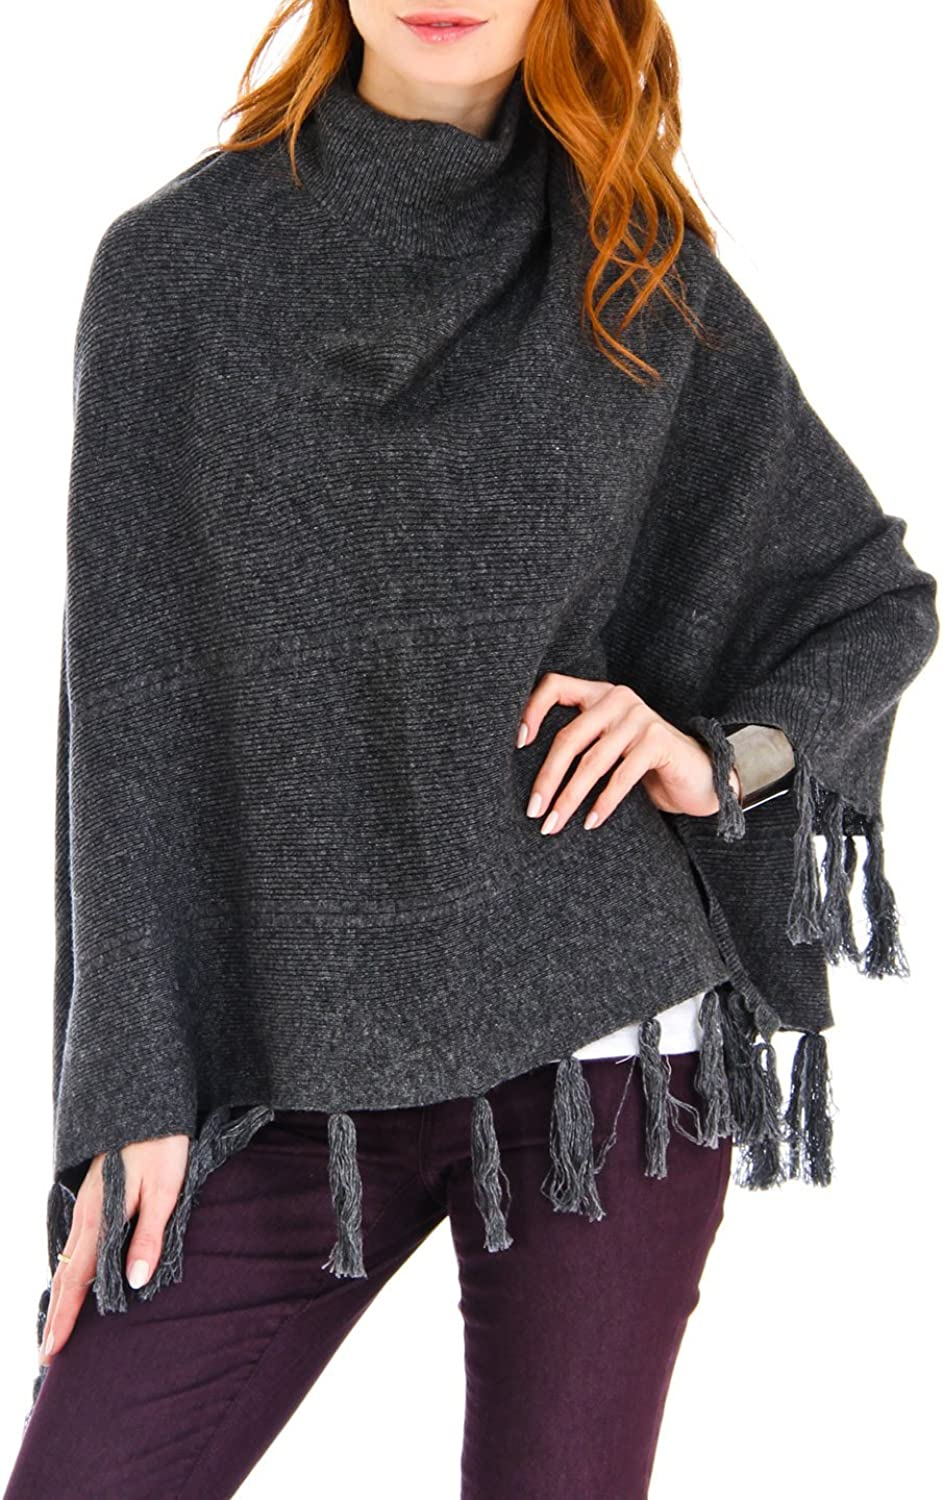 100% Mongolian Cashmere Turtle Neck Poncho with Fringes